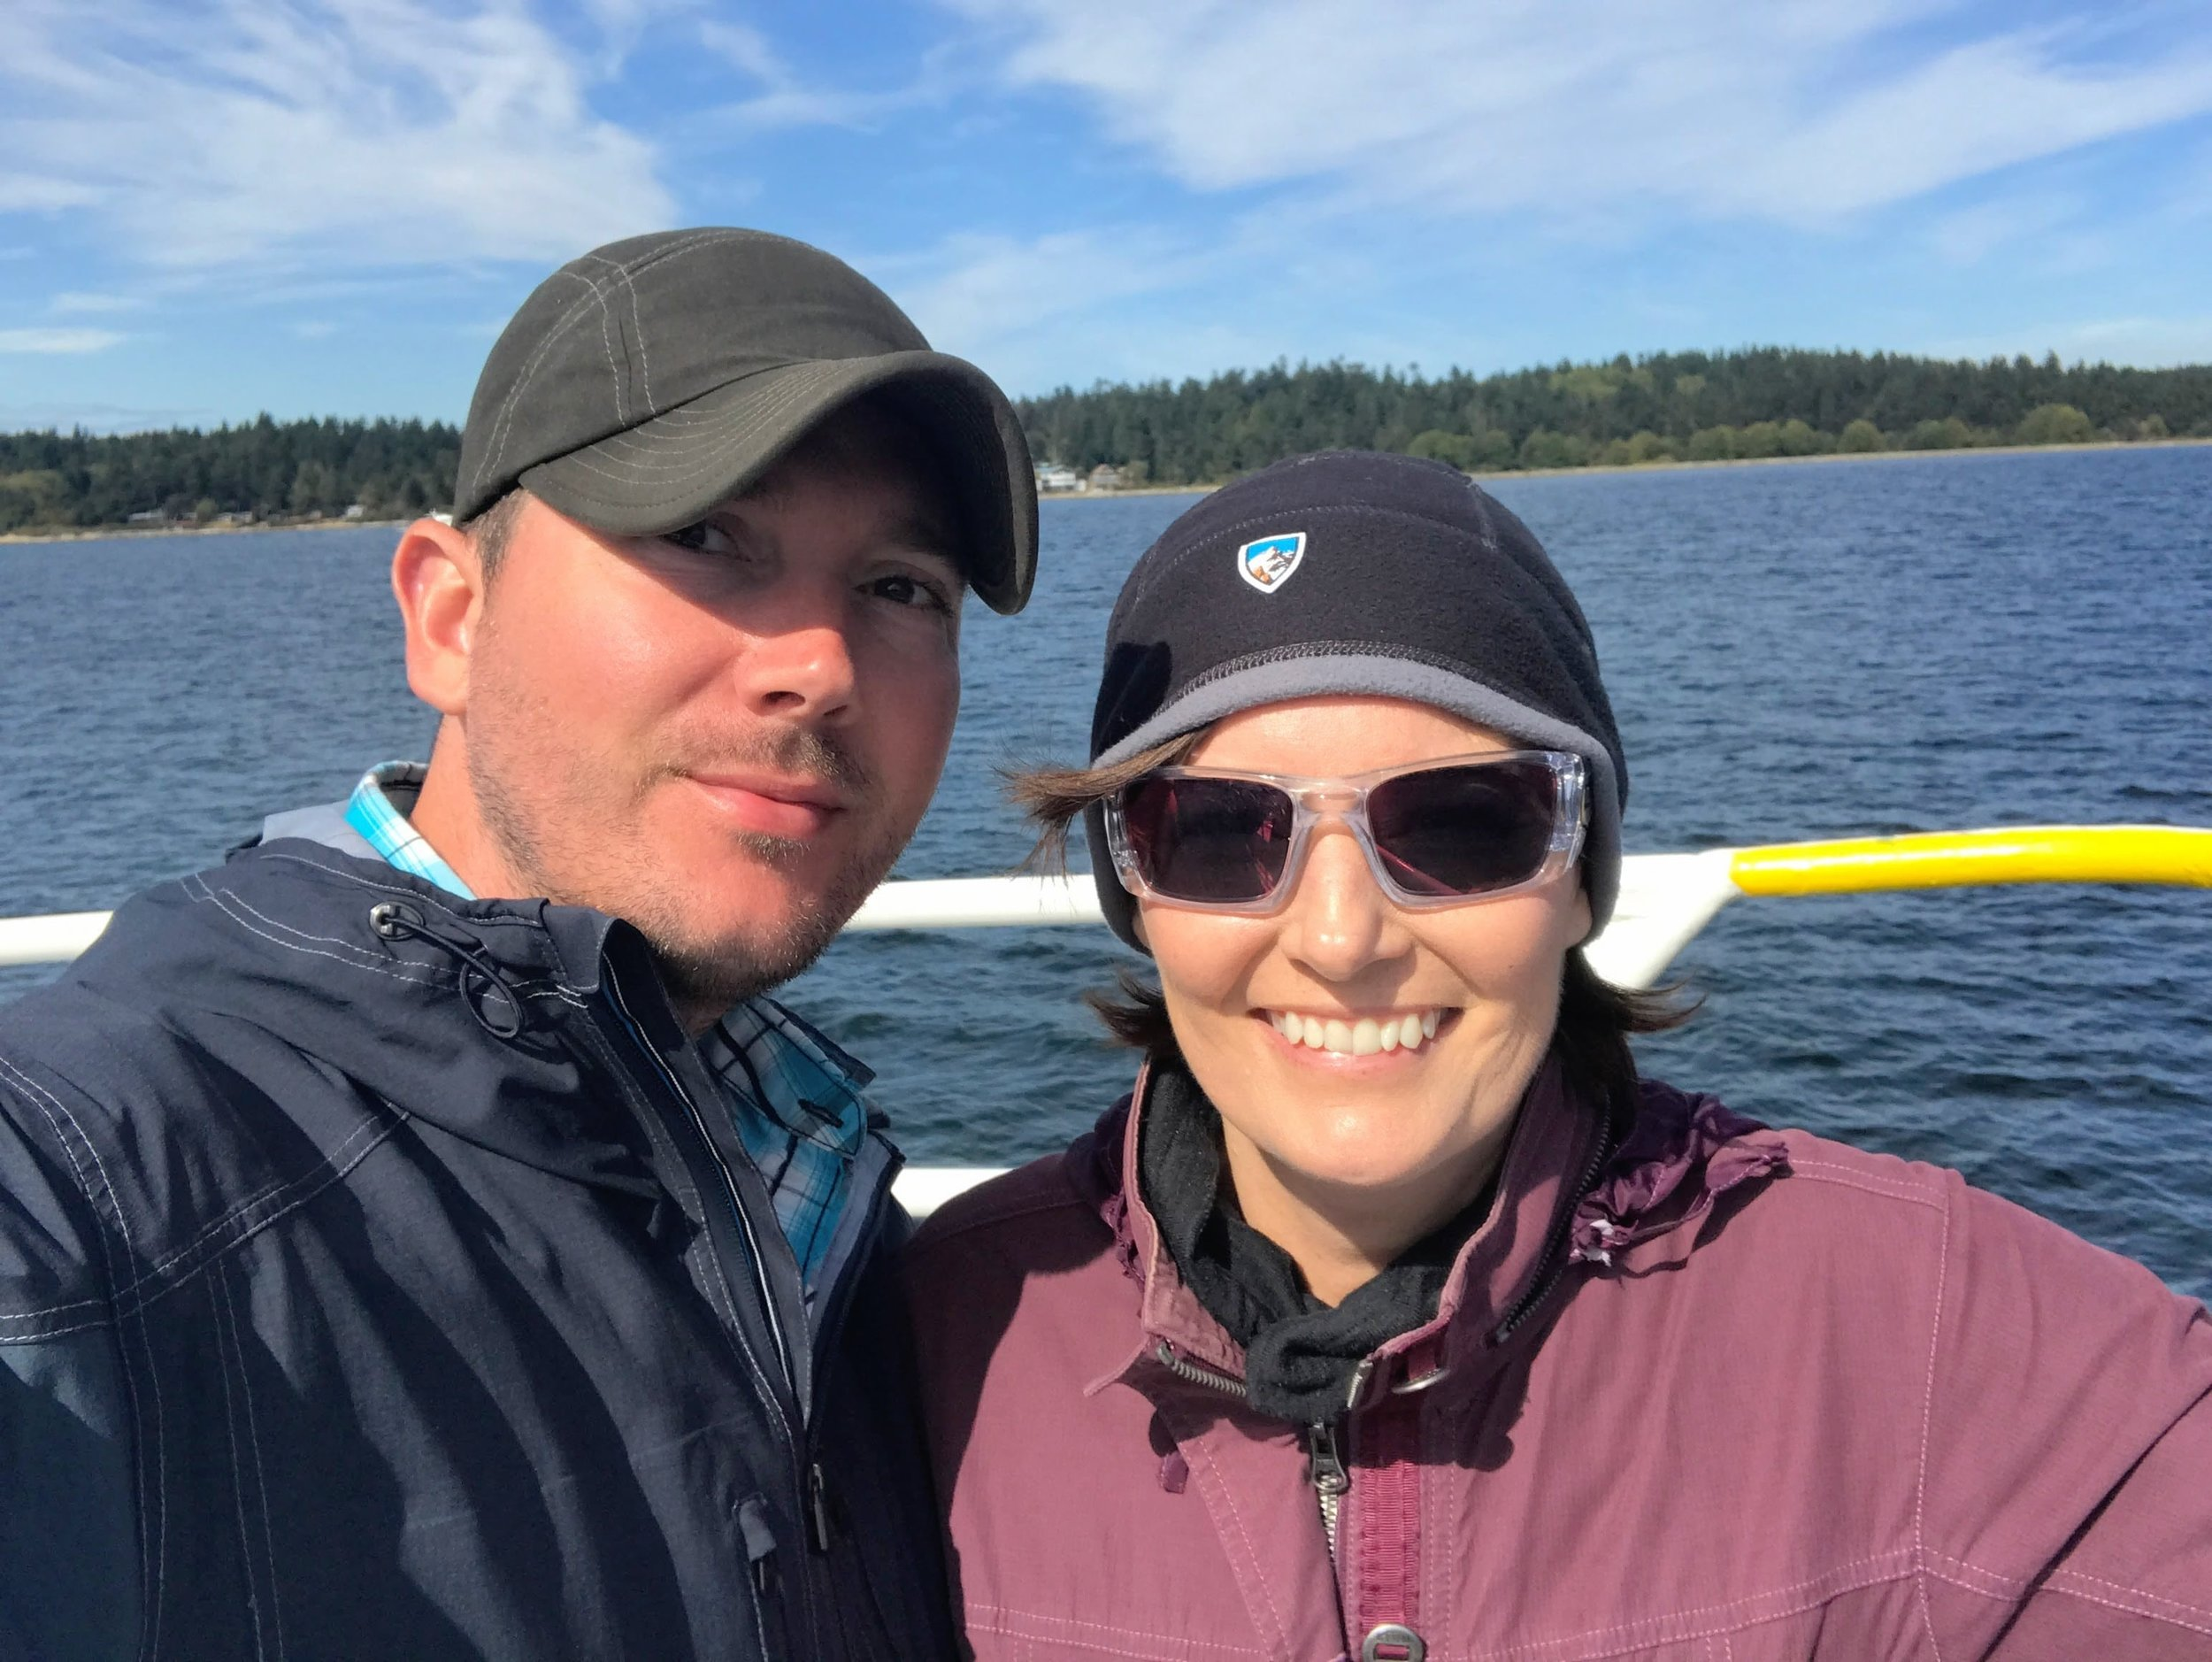 Successful adventure with Mystic Sea Charters of Anacortes